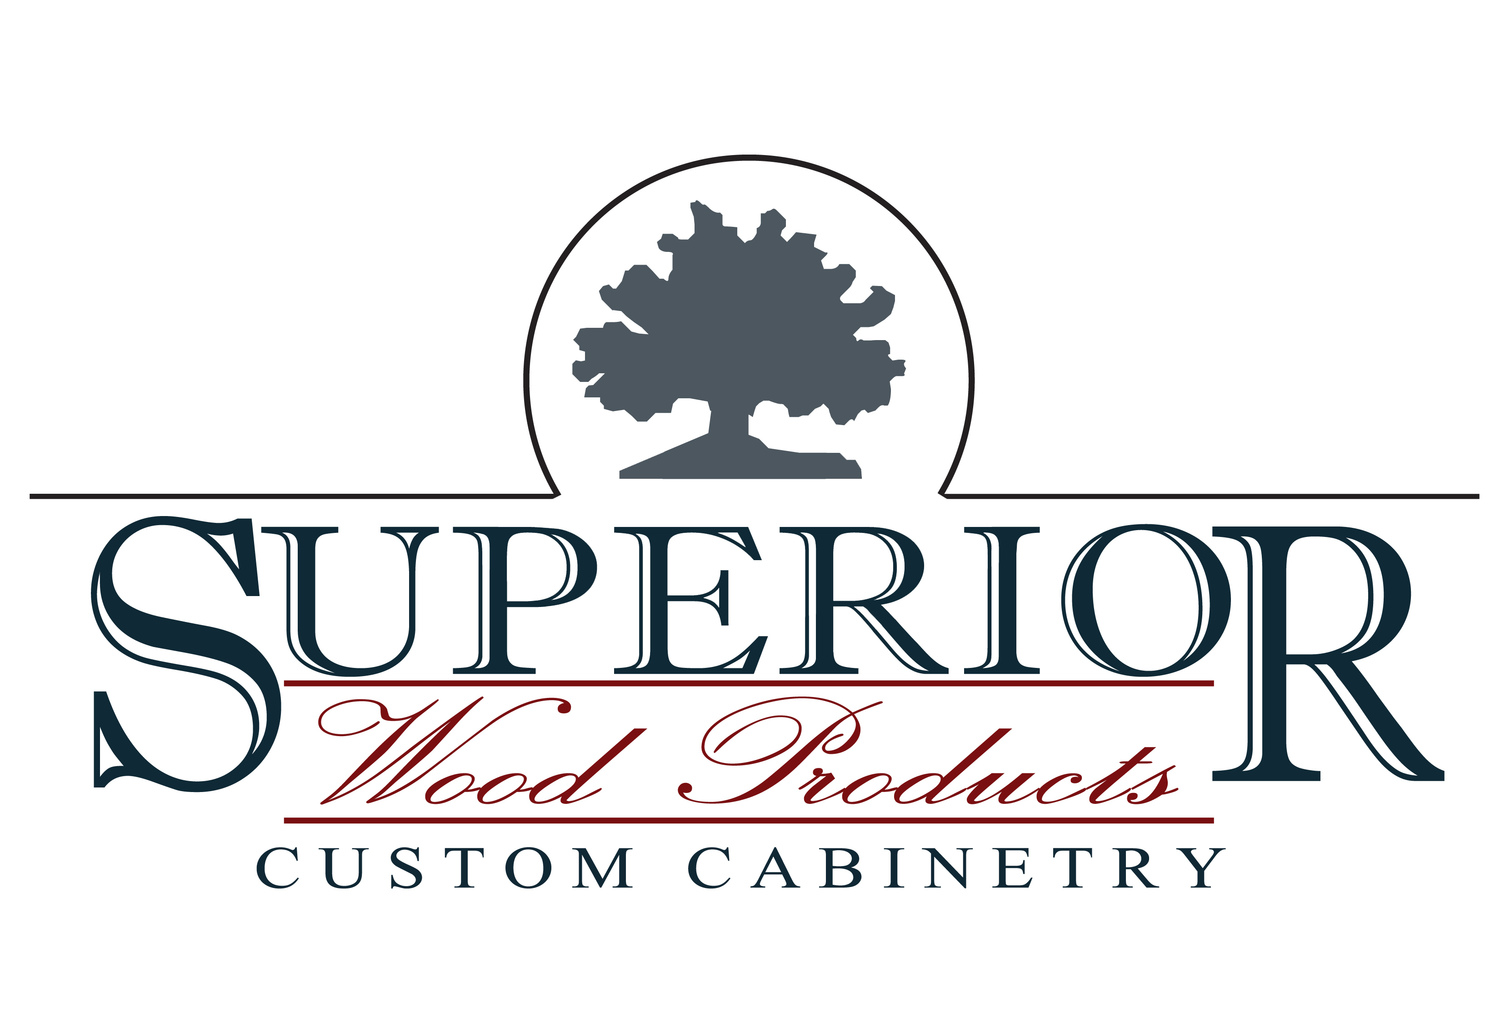 Superior Wood Products